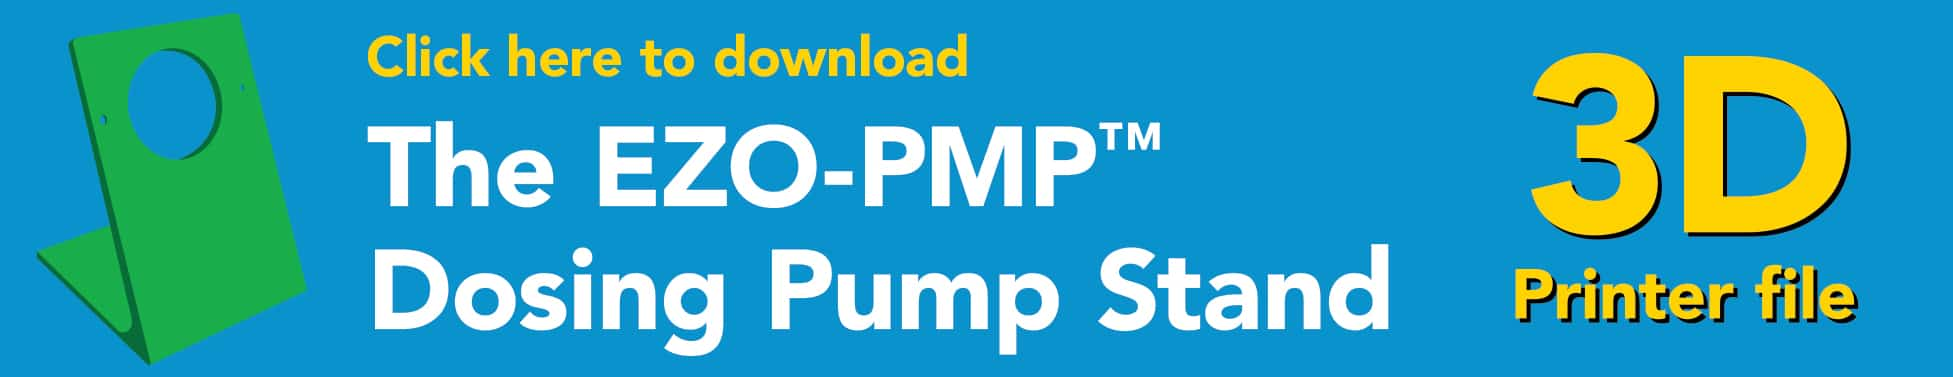 EZO-PMP™ Dosing Pump Stand